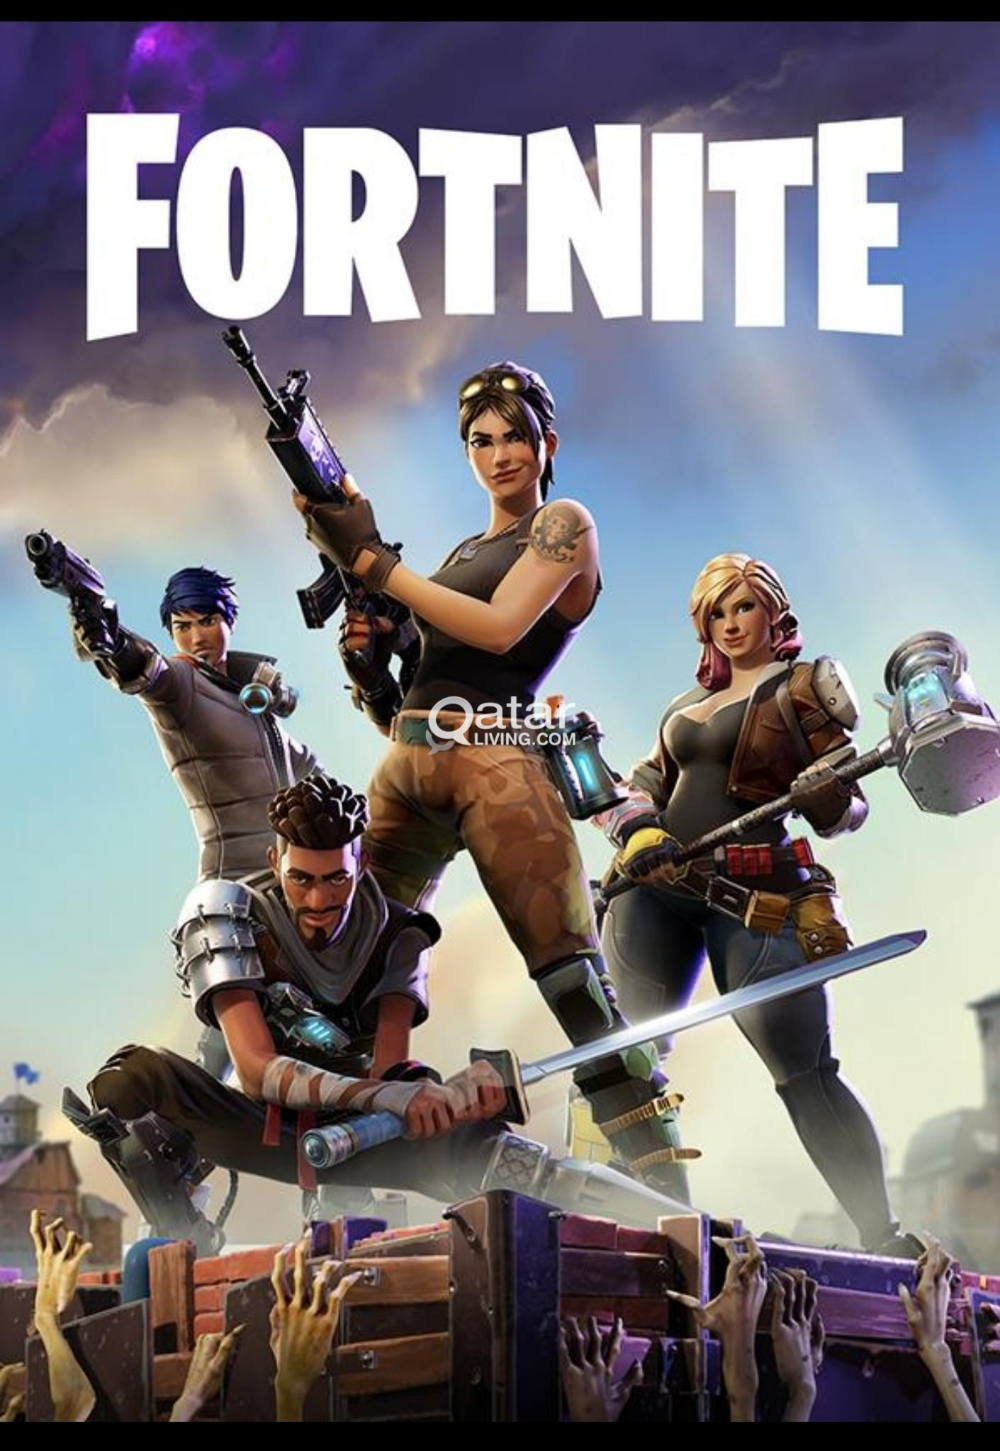 Fortnite Game Poster Culture Posters Fortnite Epic Games Birthday Card Printable